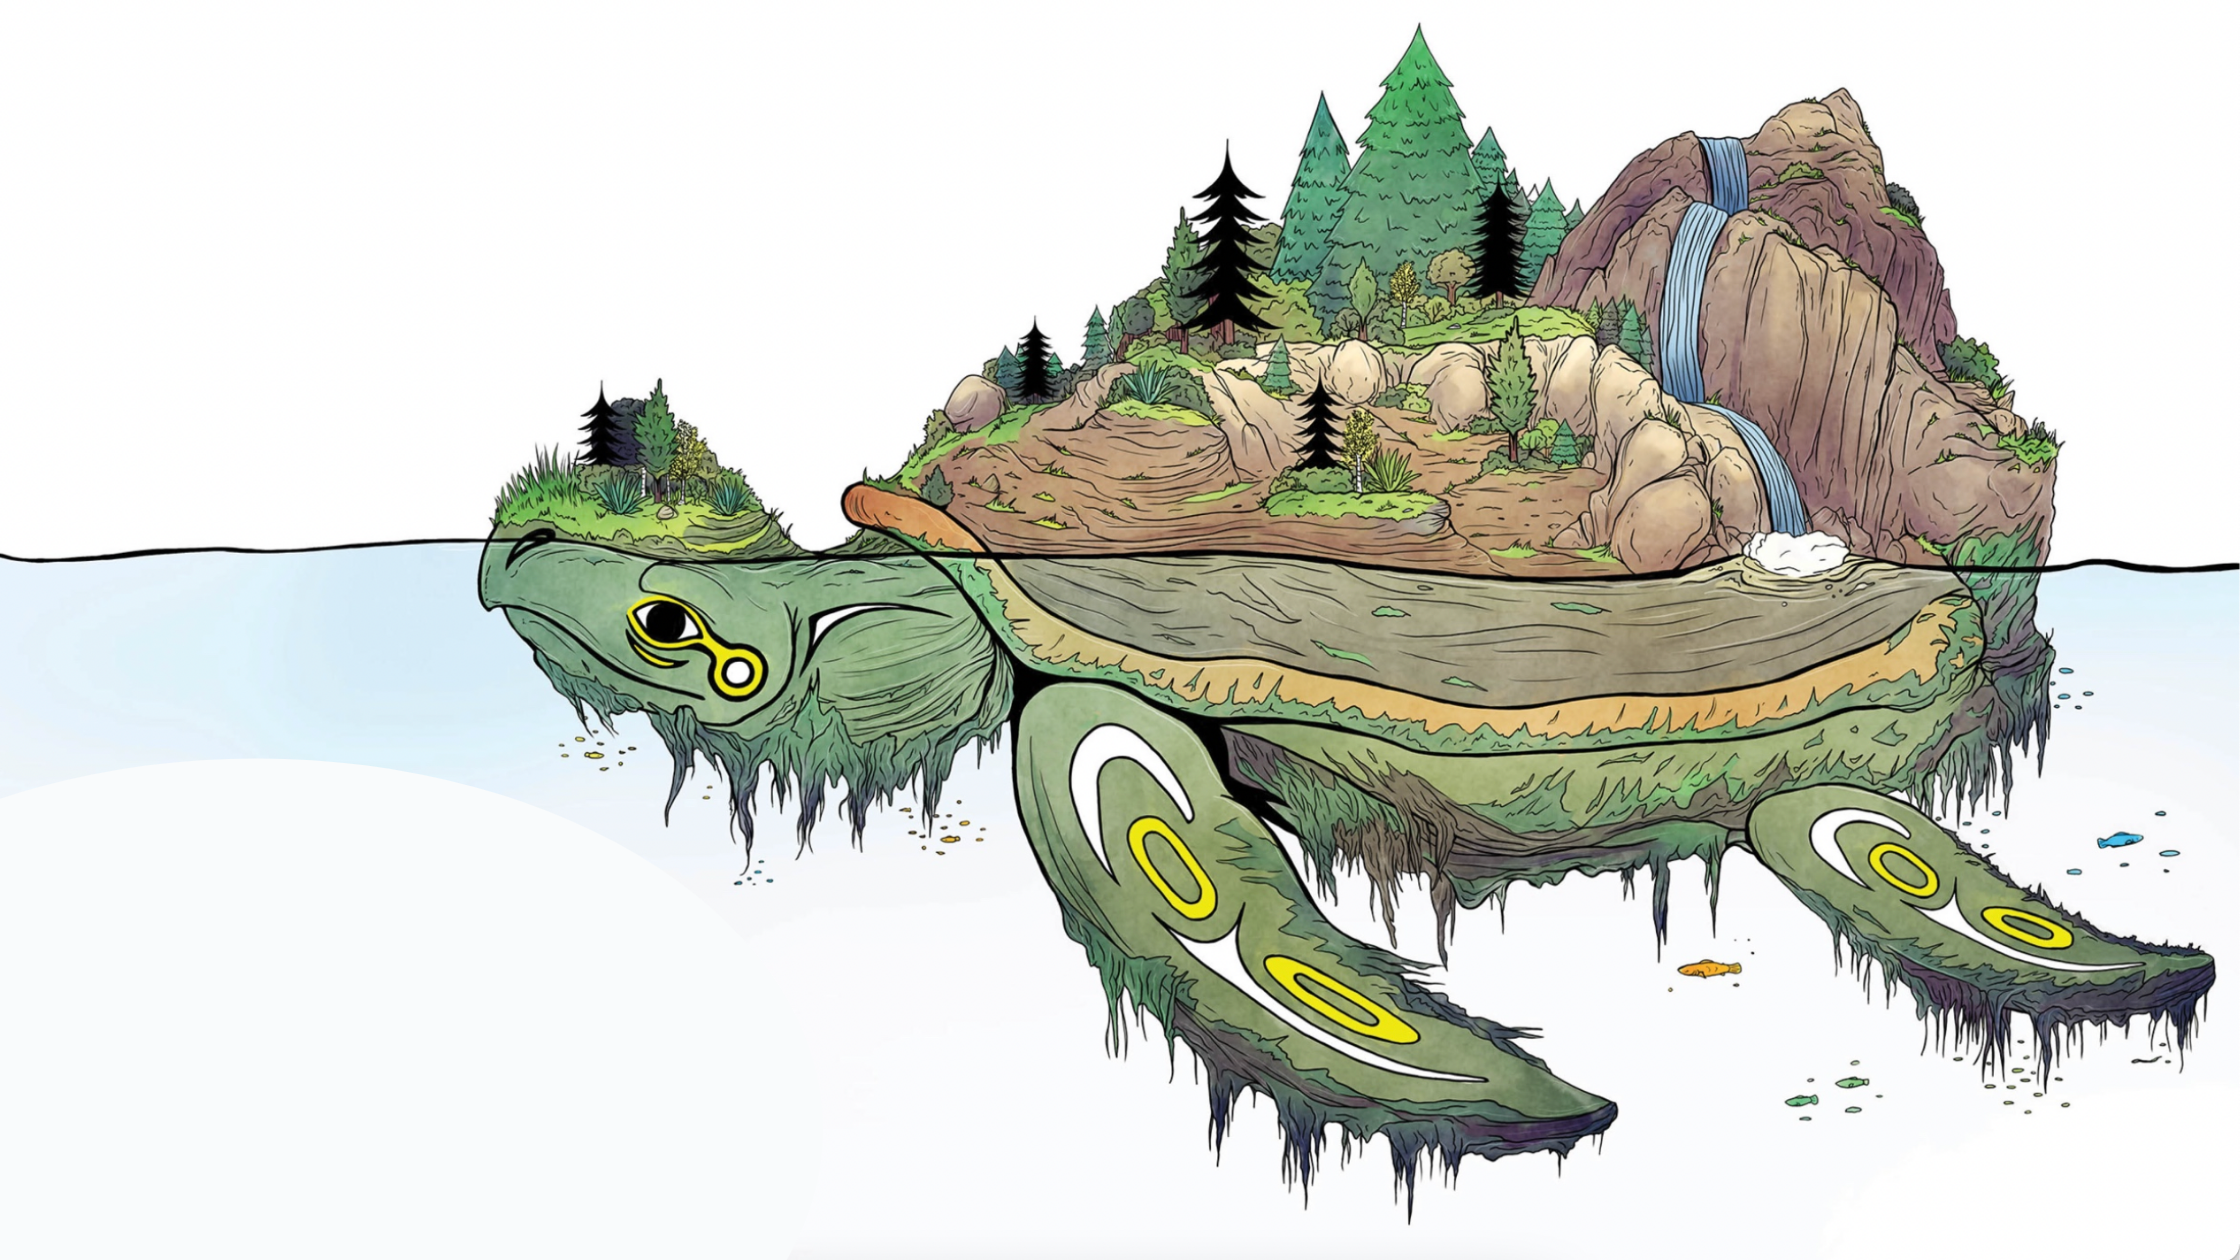 """An image of Turtle Island from the book """"If I Were a Person."""""""